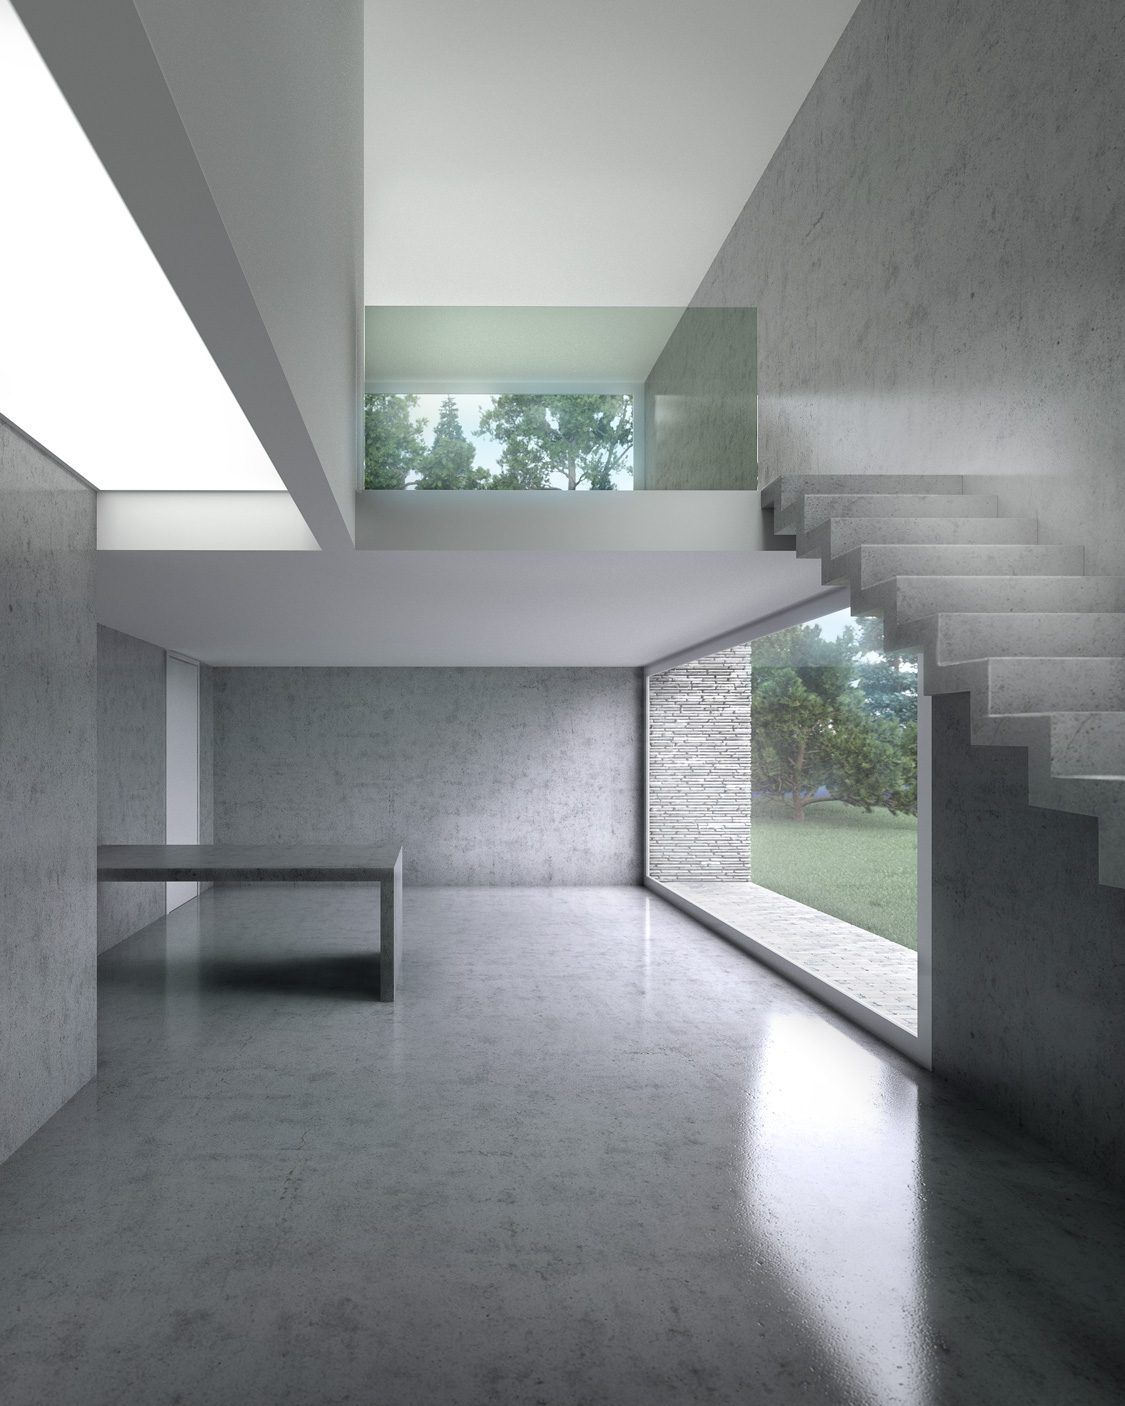 Playing with concrete 3d rendering architectural visualisation interior design cgi for Interior architectural lighting